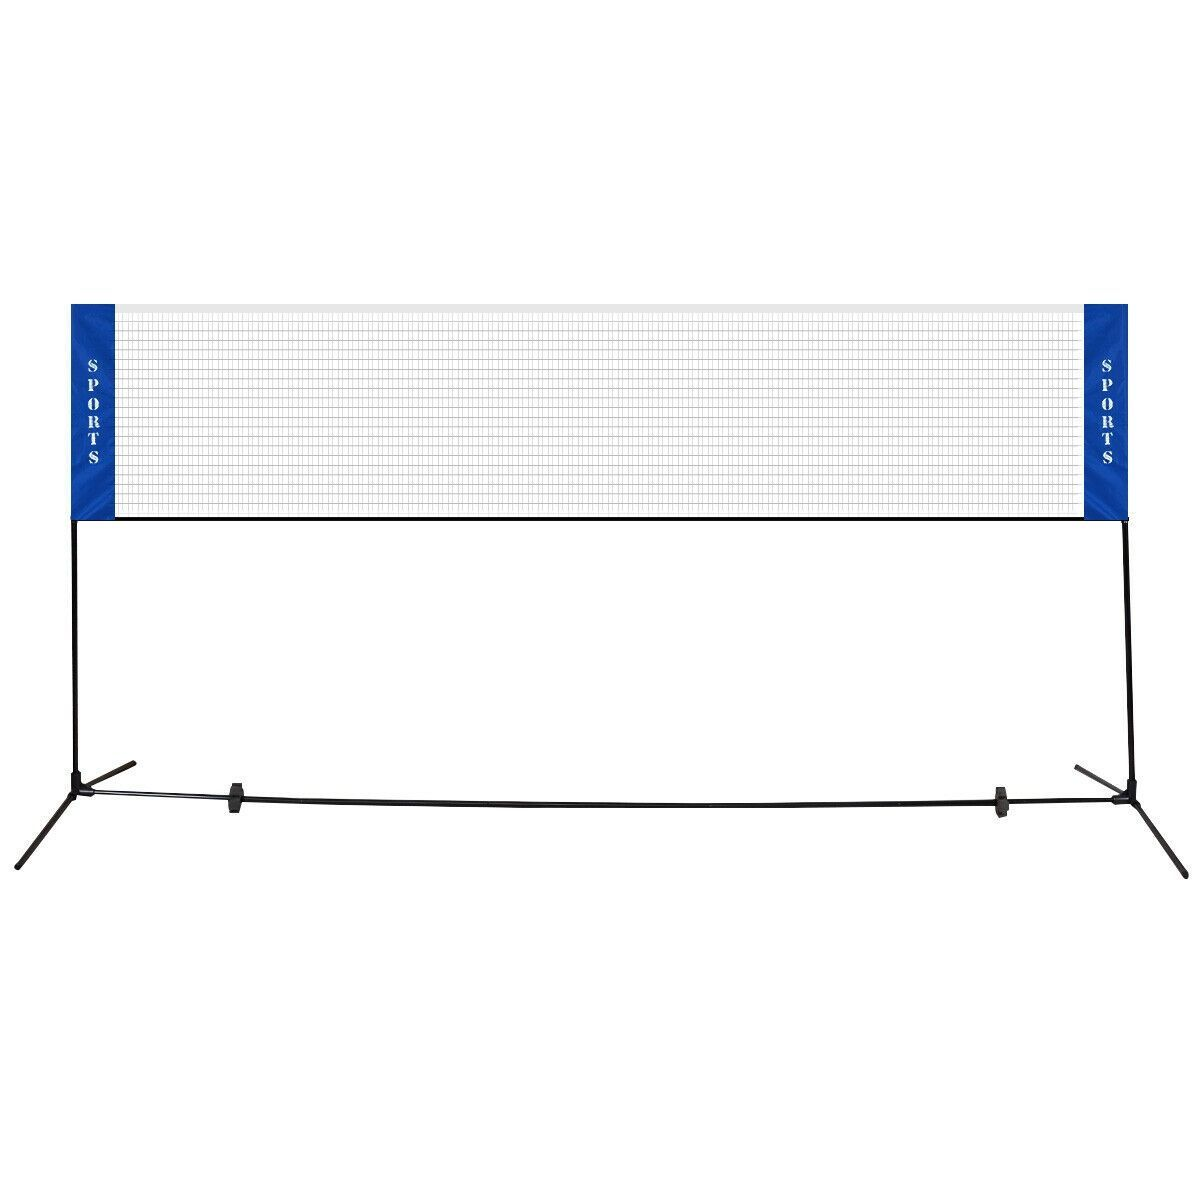 This Durable Badminton Net Is Great For Playing Badminton Tennis Volleyball Or Other Over The Net Sports In Backyard G In 2020 Badminton Nets Badminton Carry On Bag